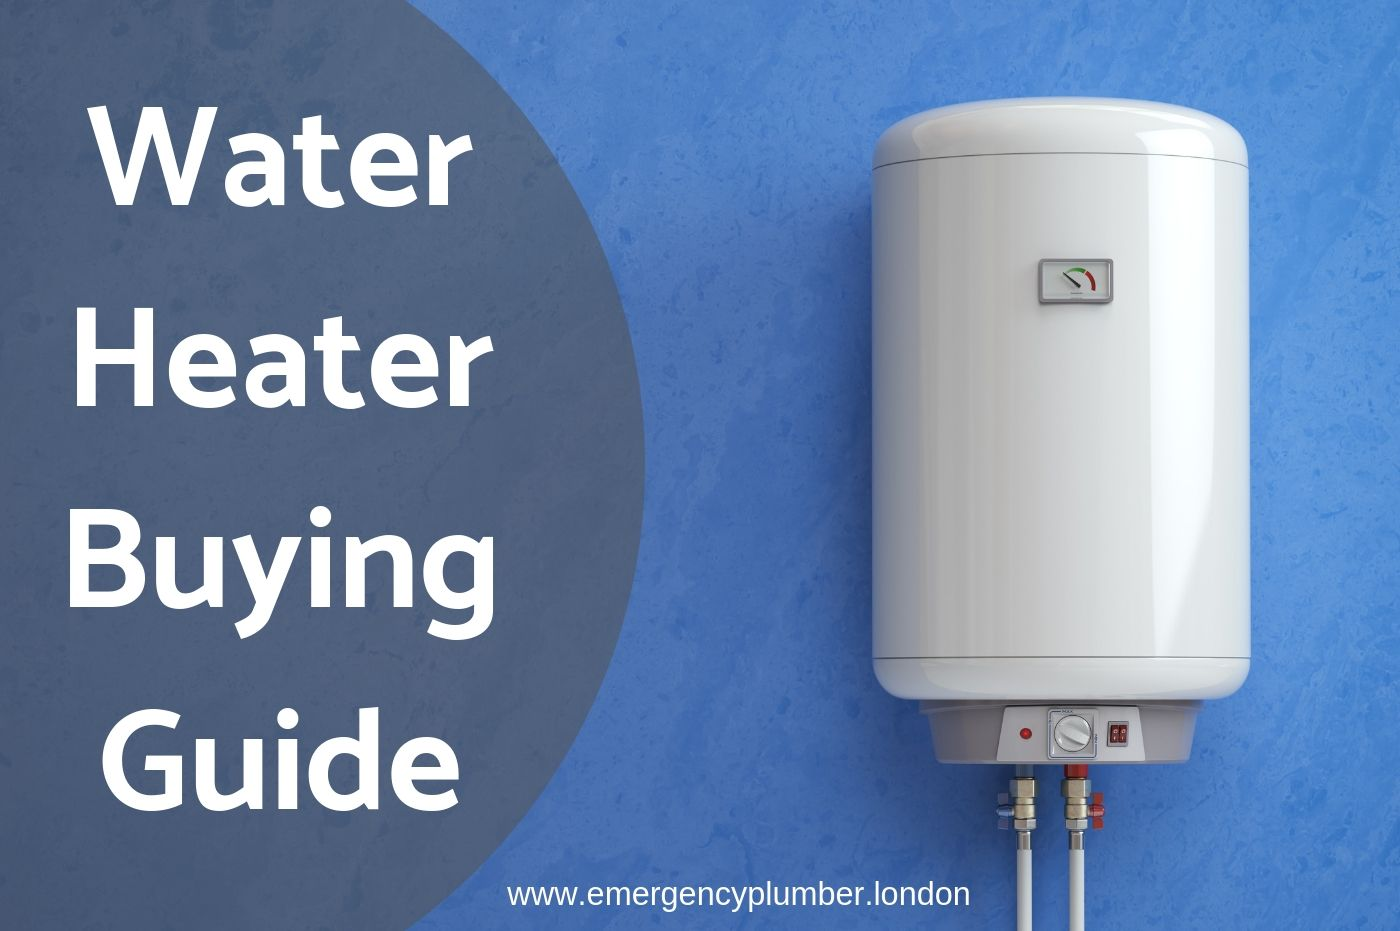 Complete Guide to Purchase Water Heater